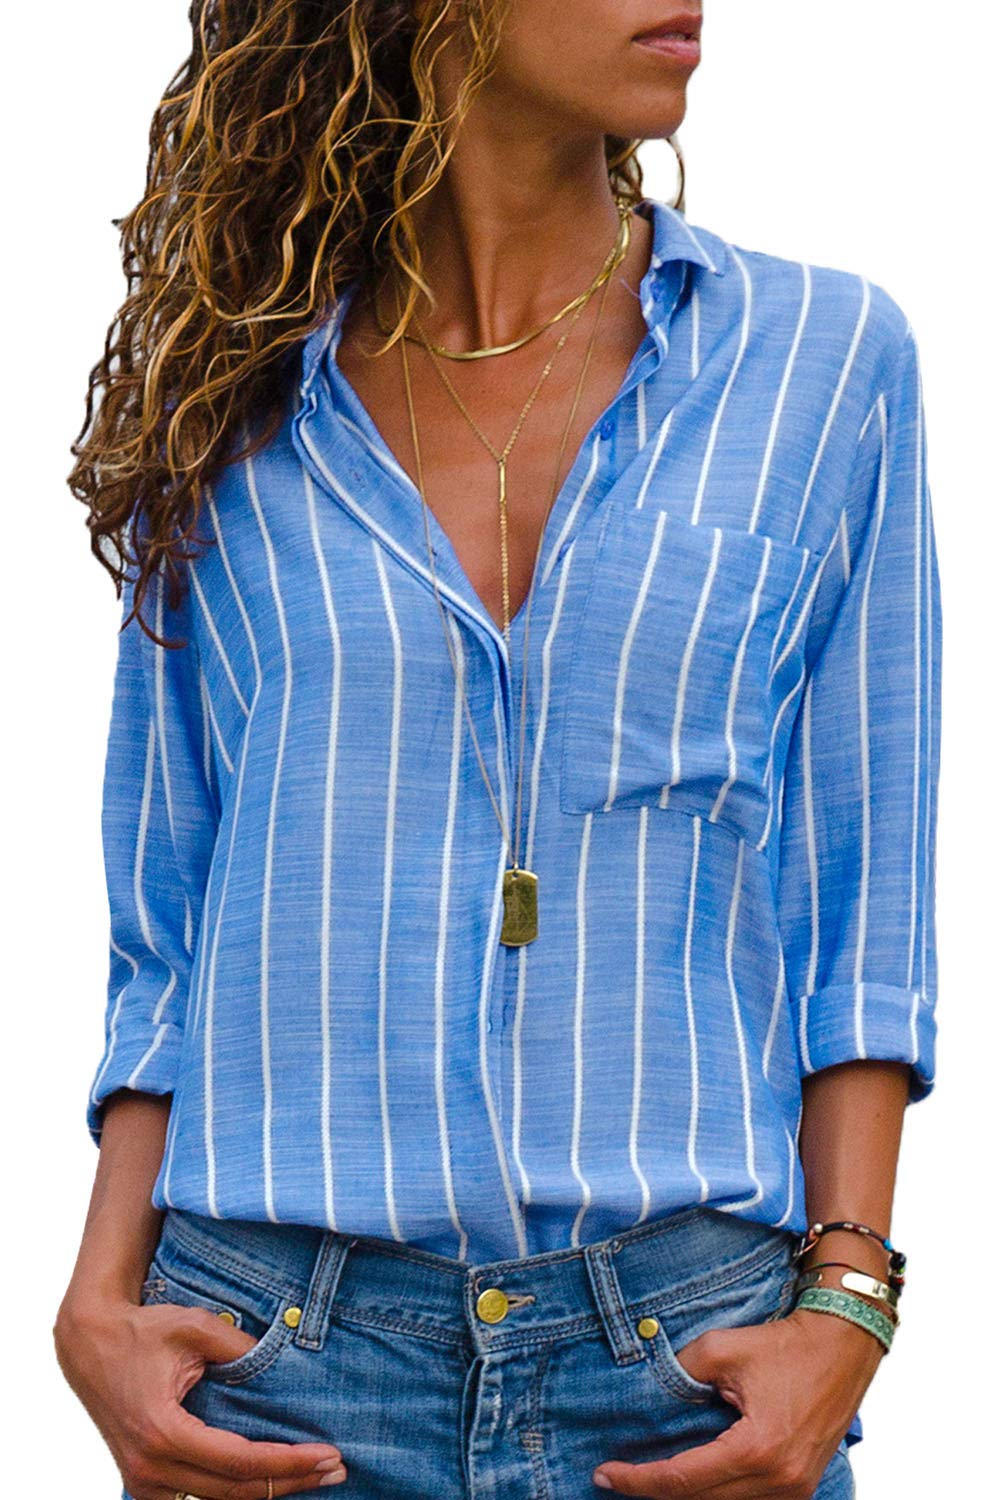 Dokotoo Womens Tops Plus Size Autumn Elegant Striped V Neck Casual Long Sleeve Button Down Henley Shirt Blouses and Tops Blue XX-Large